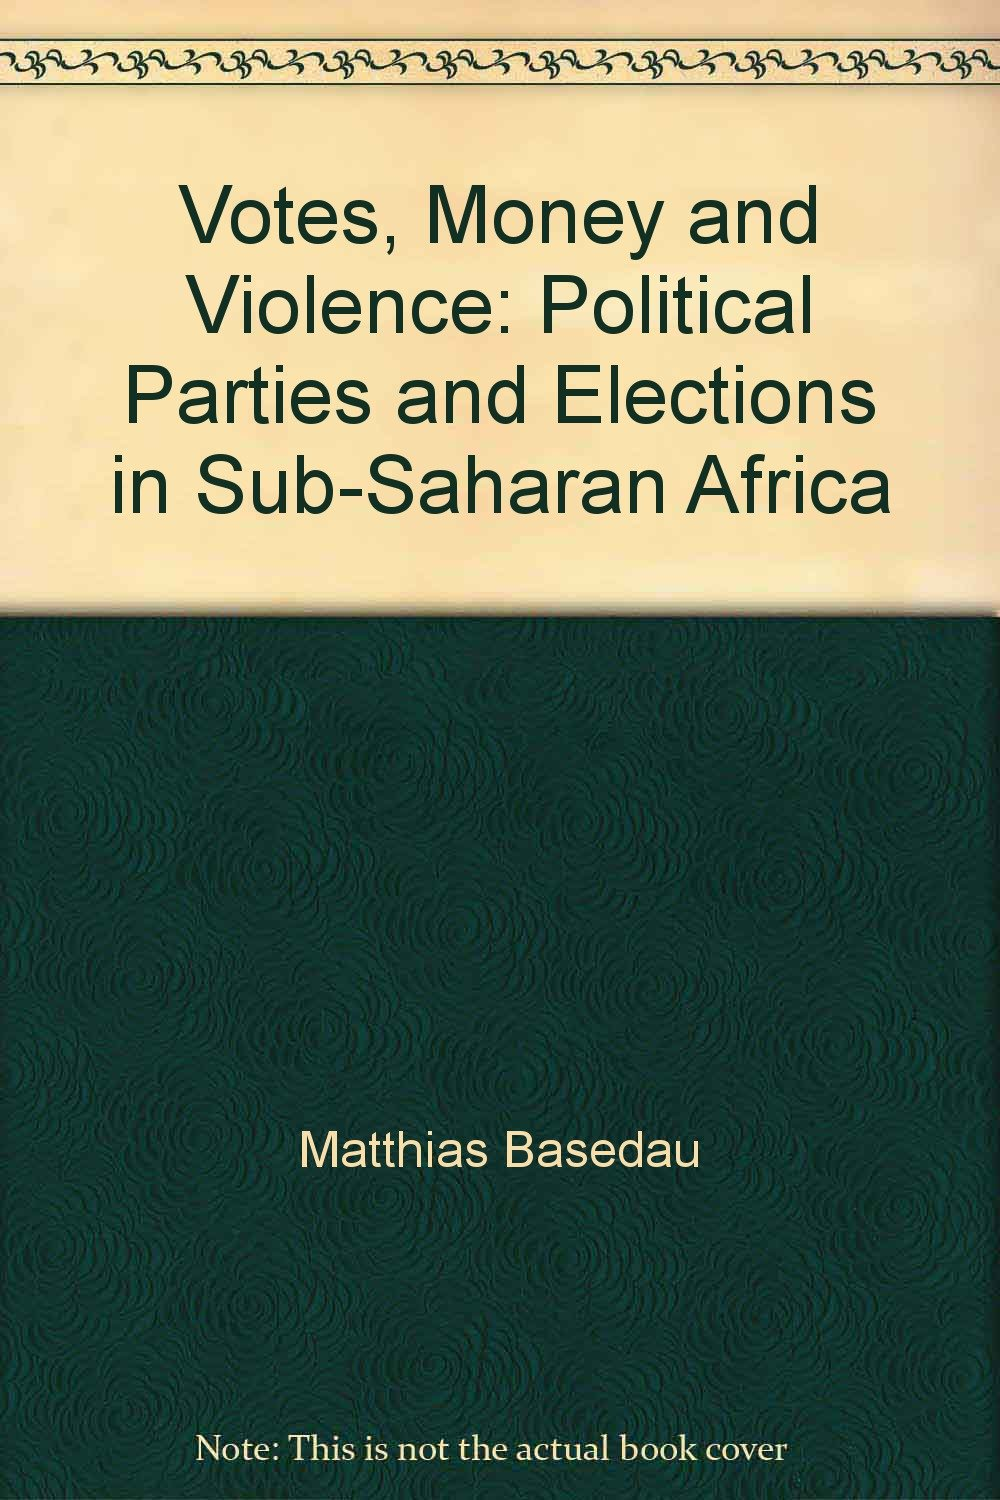 Votes, Money and Violence: Political Parties and Elections in Sub-Saharan Africa PDF